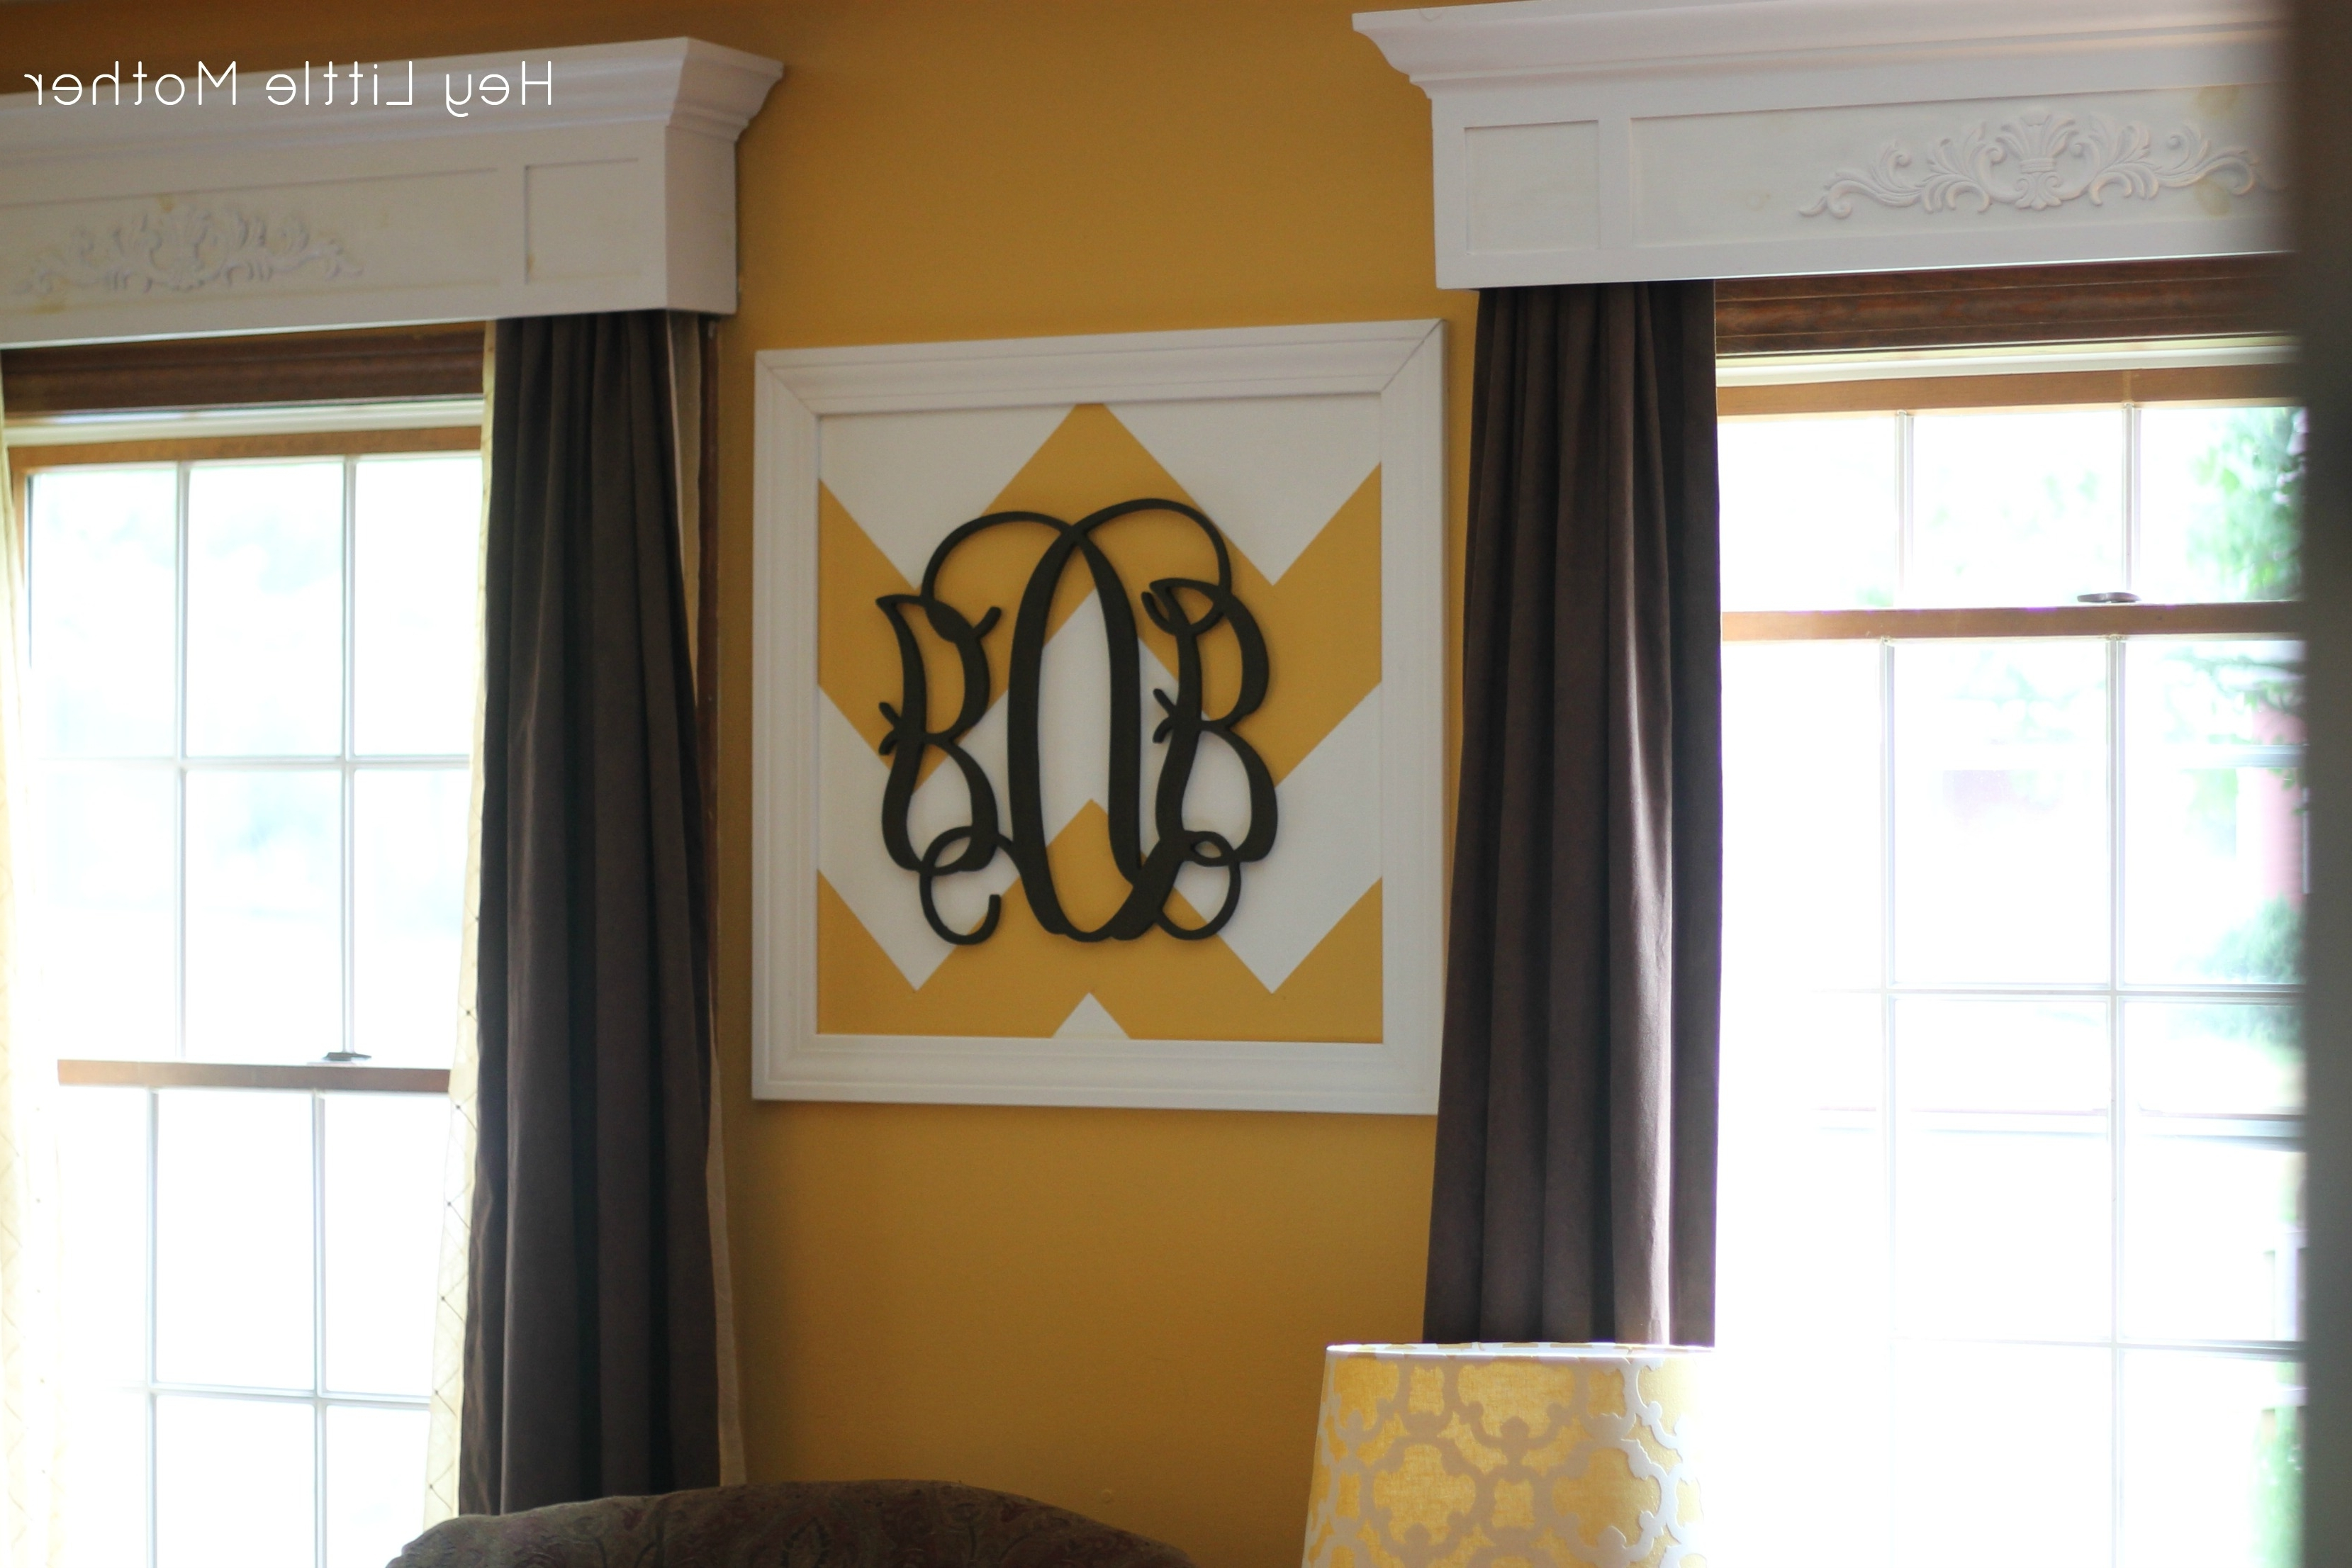 Wall Art Designs: Awesome Designed Framed Monogram Wall Art With Within Most Recent Framed Monogram Wall Art (View 14 of 15)